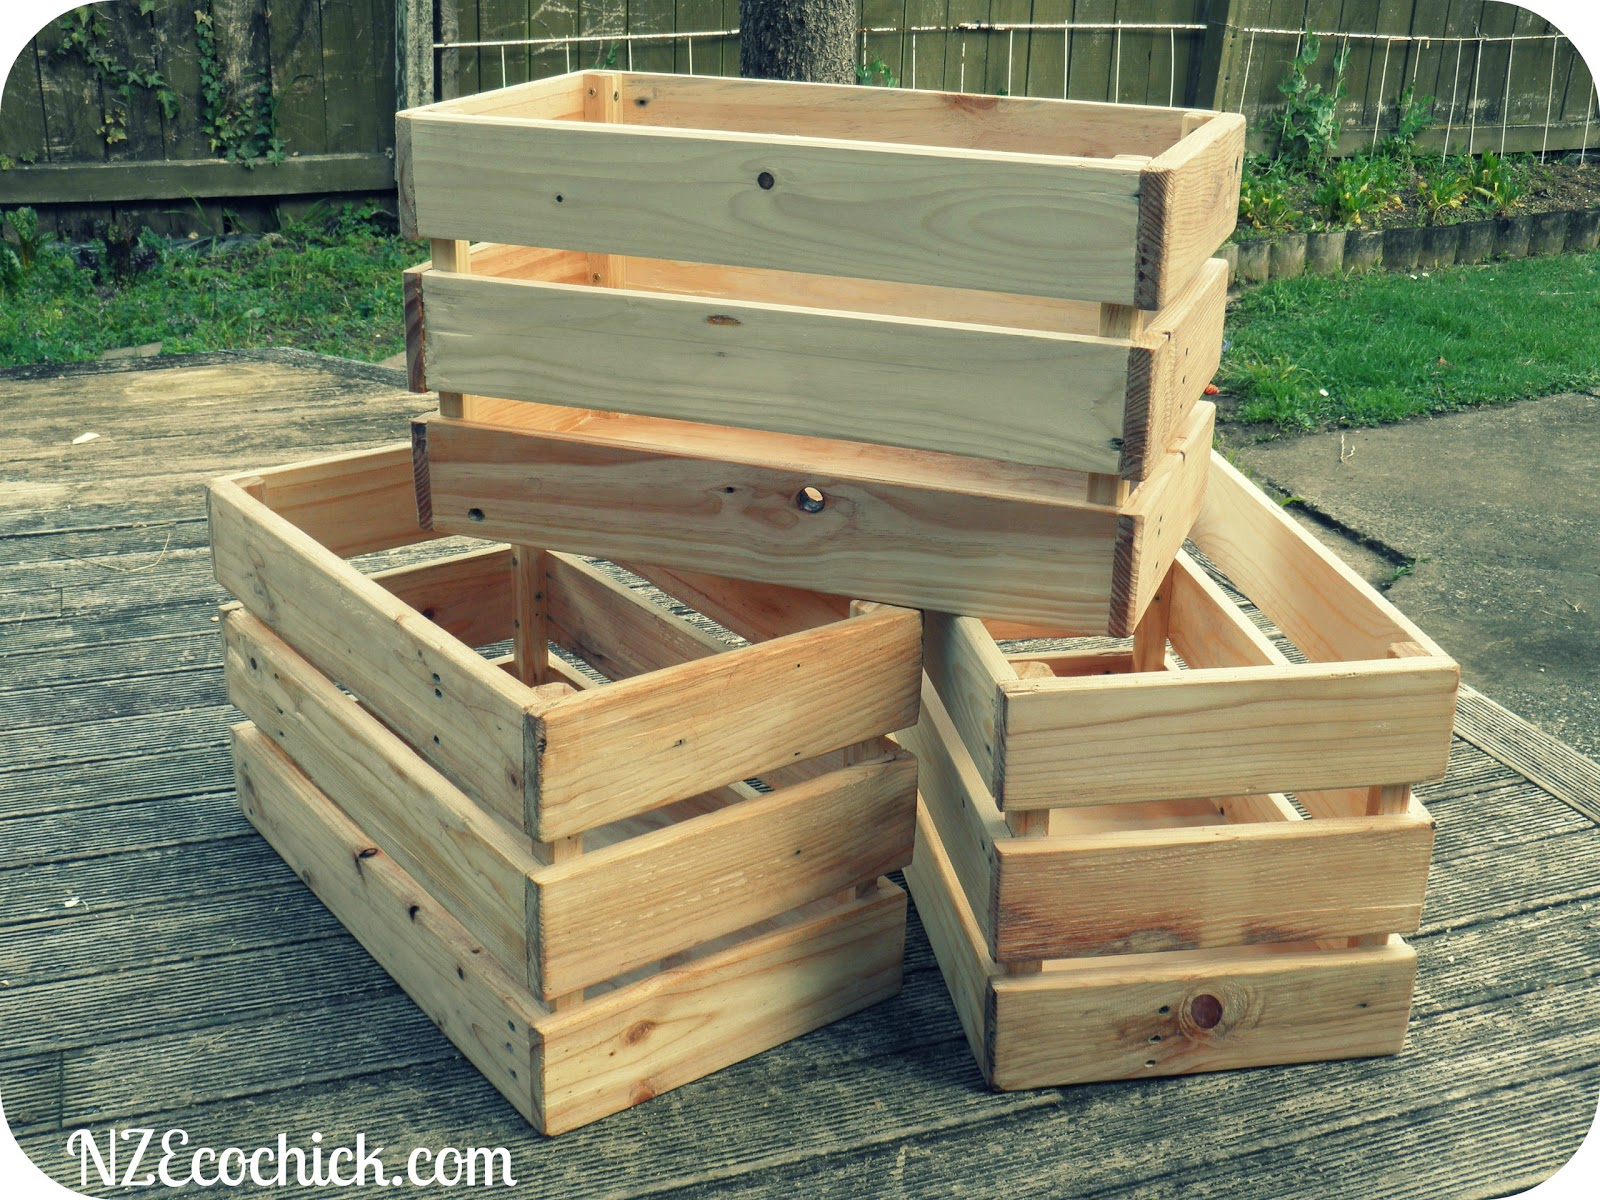 Pallet crates nz ecochick for How to make stuff out of wooden pallets